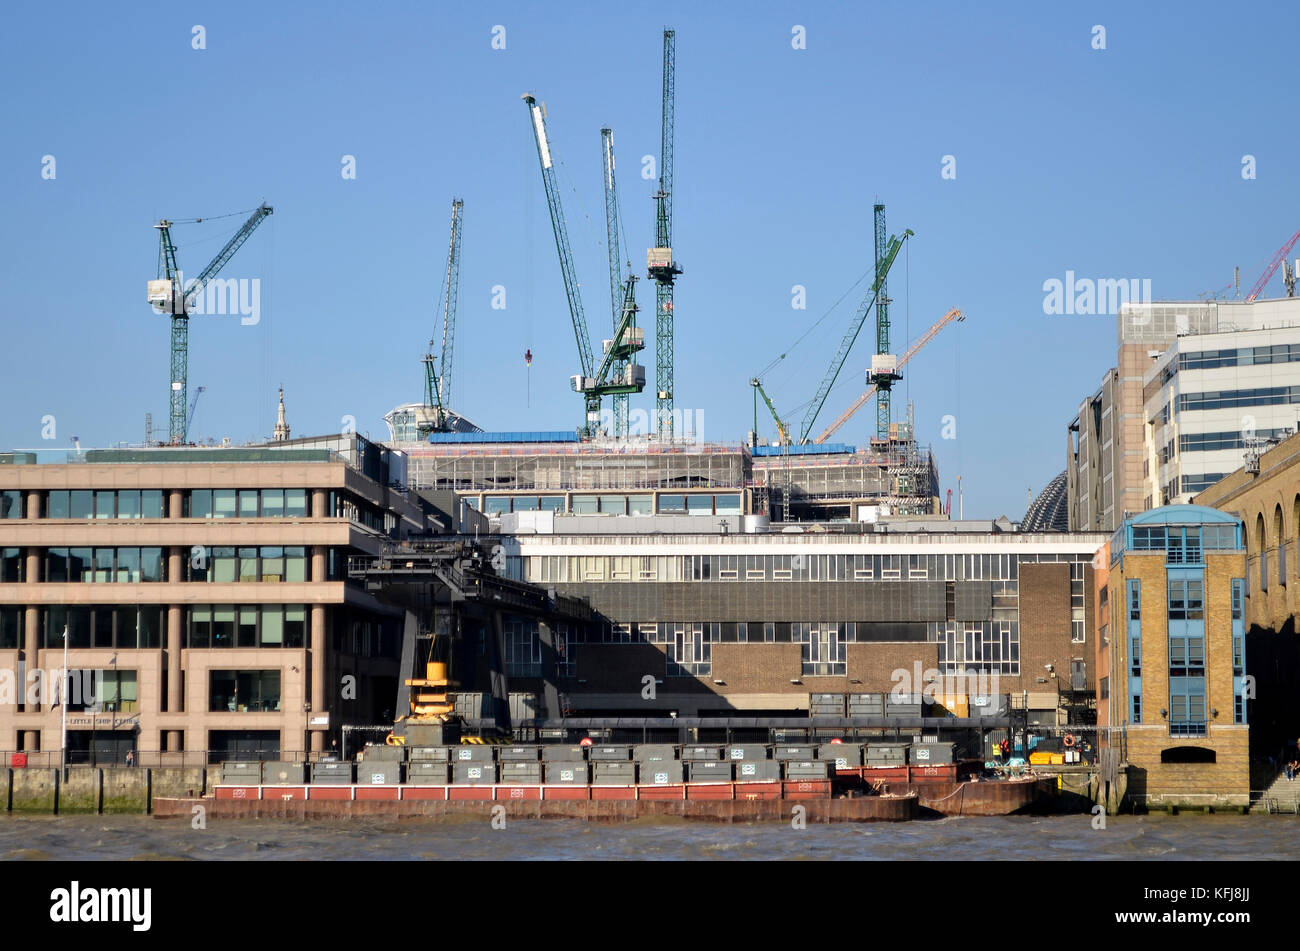 Cory Environmental waste management container site and barges at Walbrook Wharf, Upper Thames Street, London. Bloomberg - Stock Image